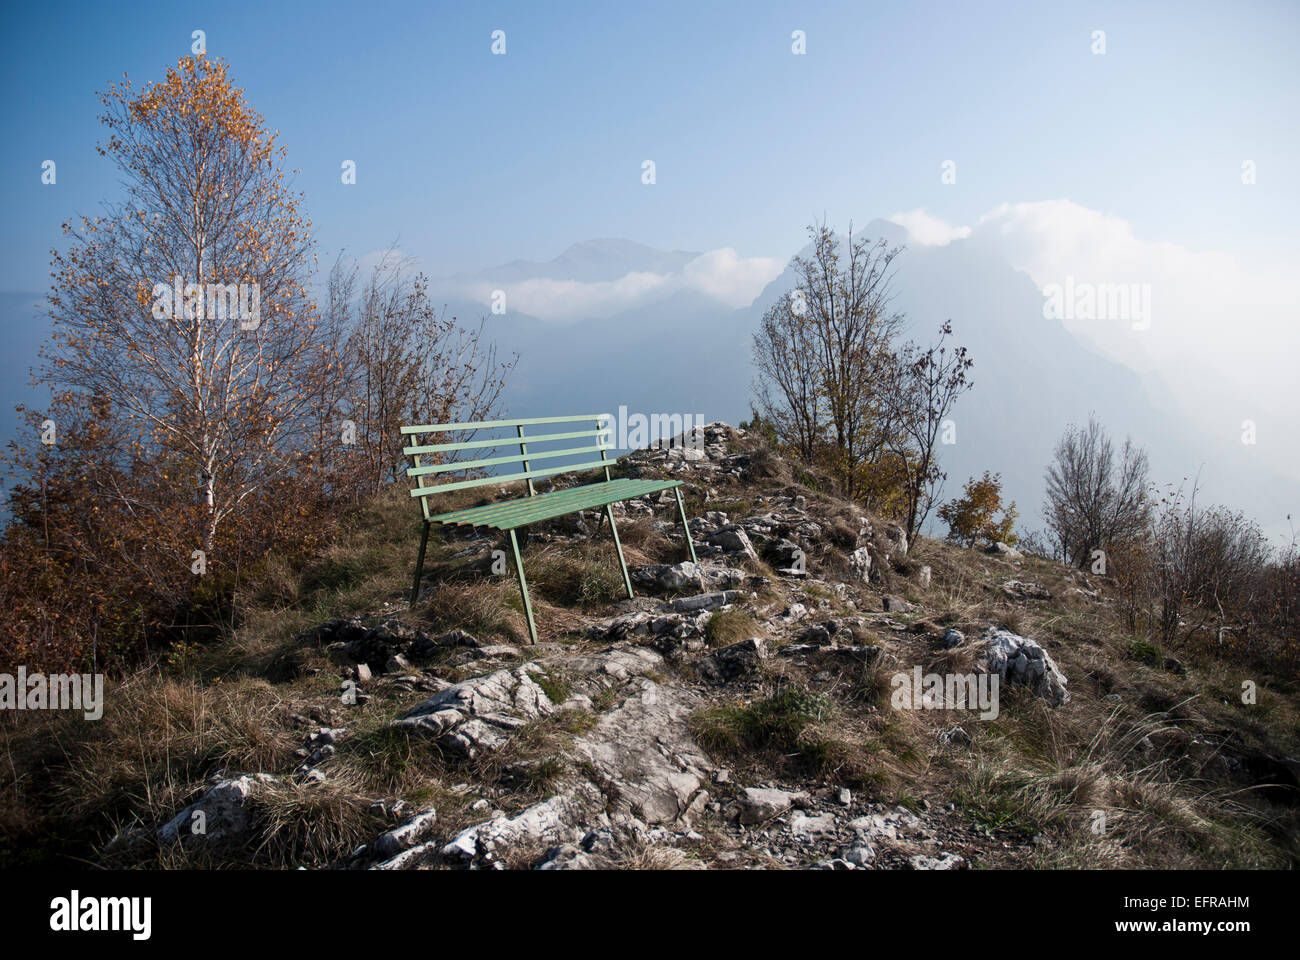 Mountain top outlook, Lake Iseo, Italy - Stock Image